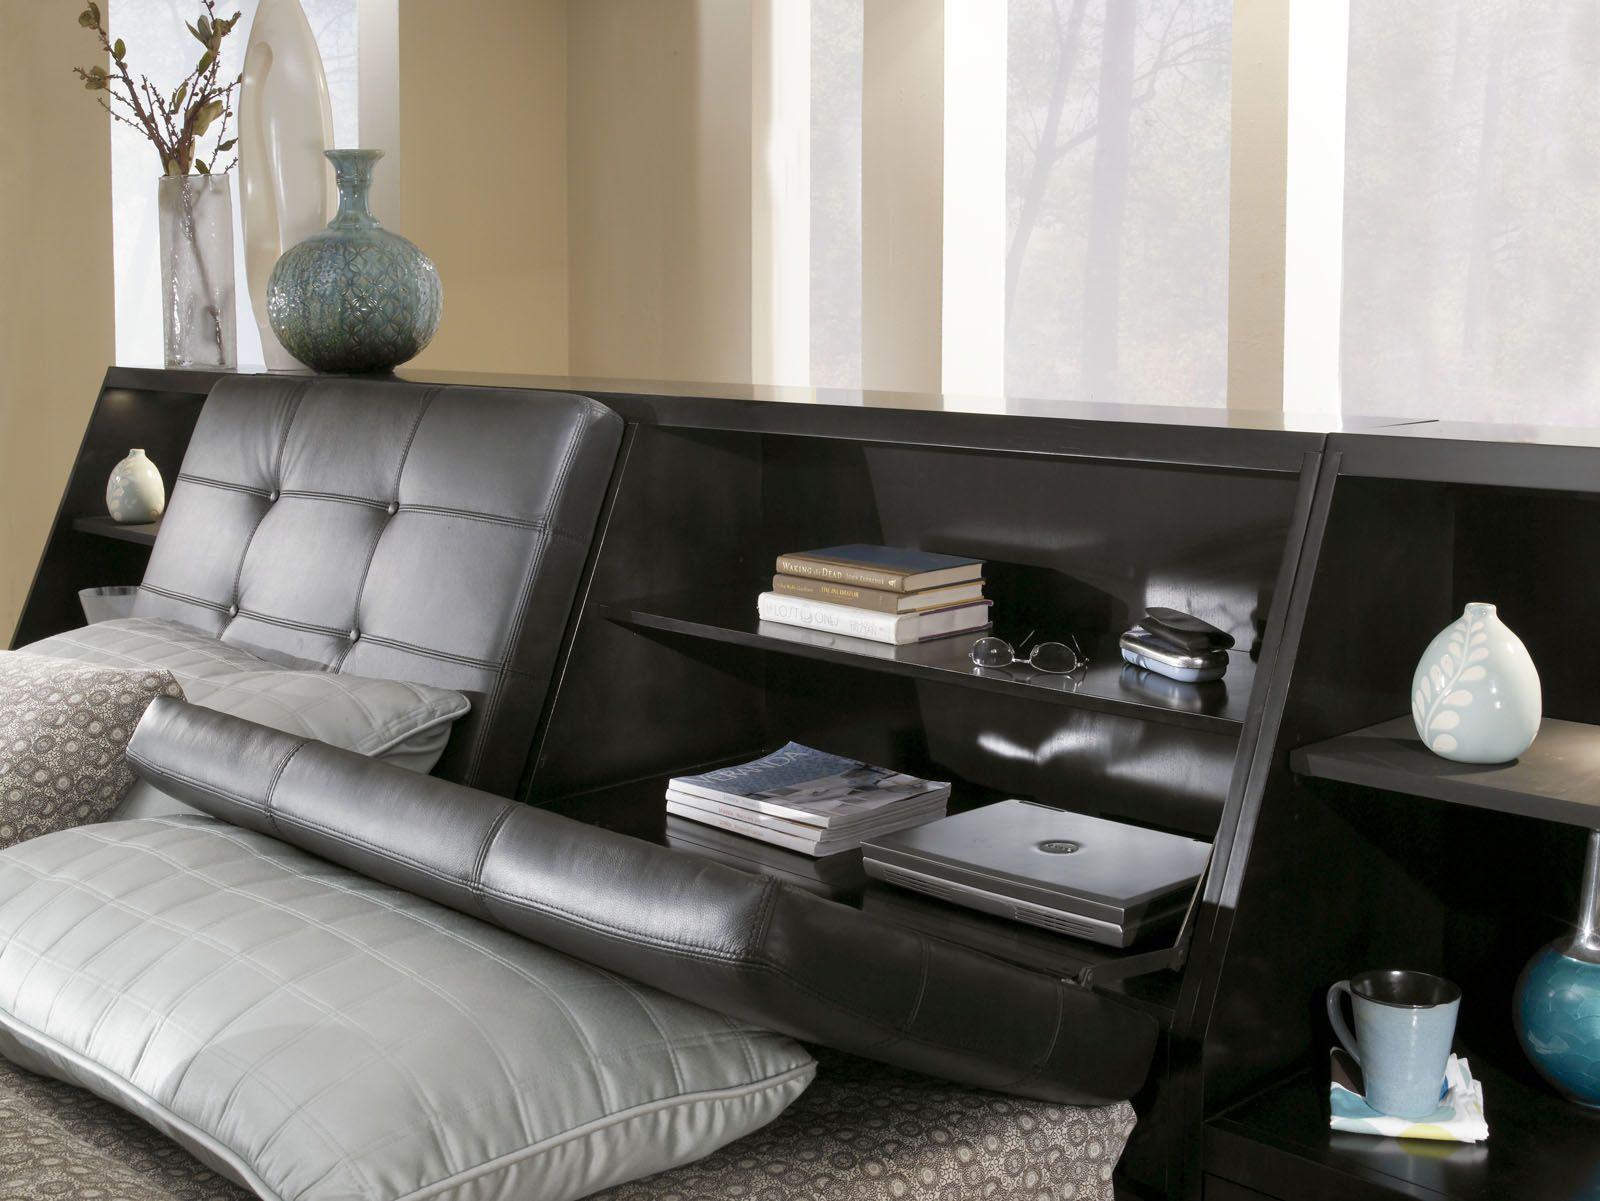 1,432 BROYHILL PERSPECTIVES QUEEN LEATHER BED IN GRAPHITE 4444 (866 ...